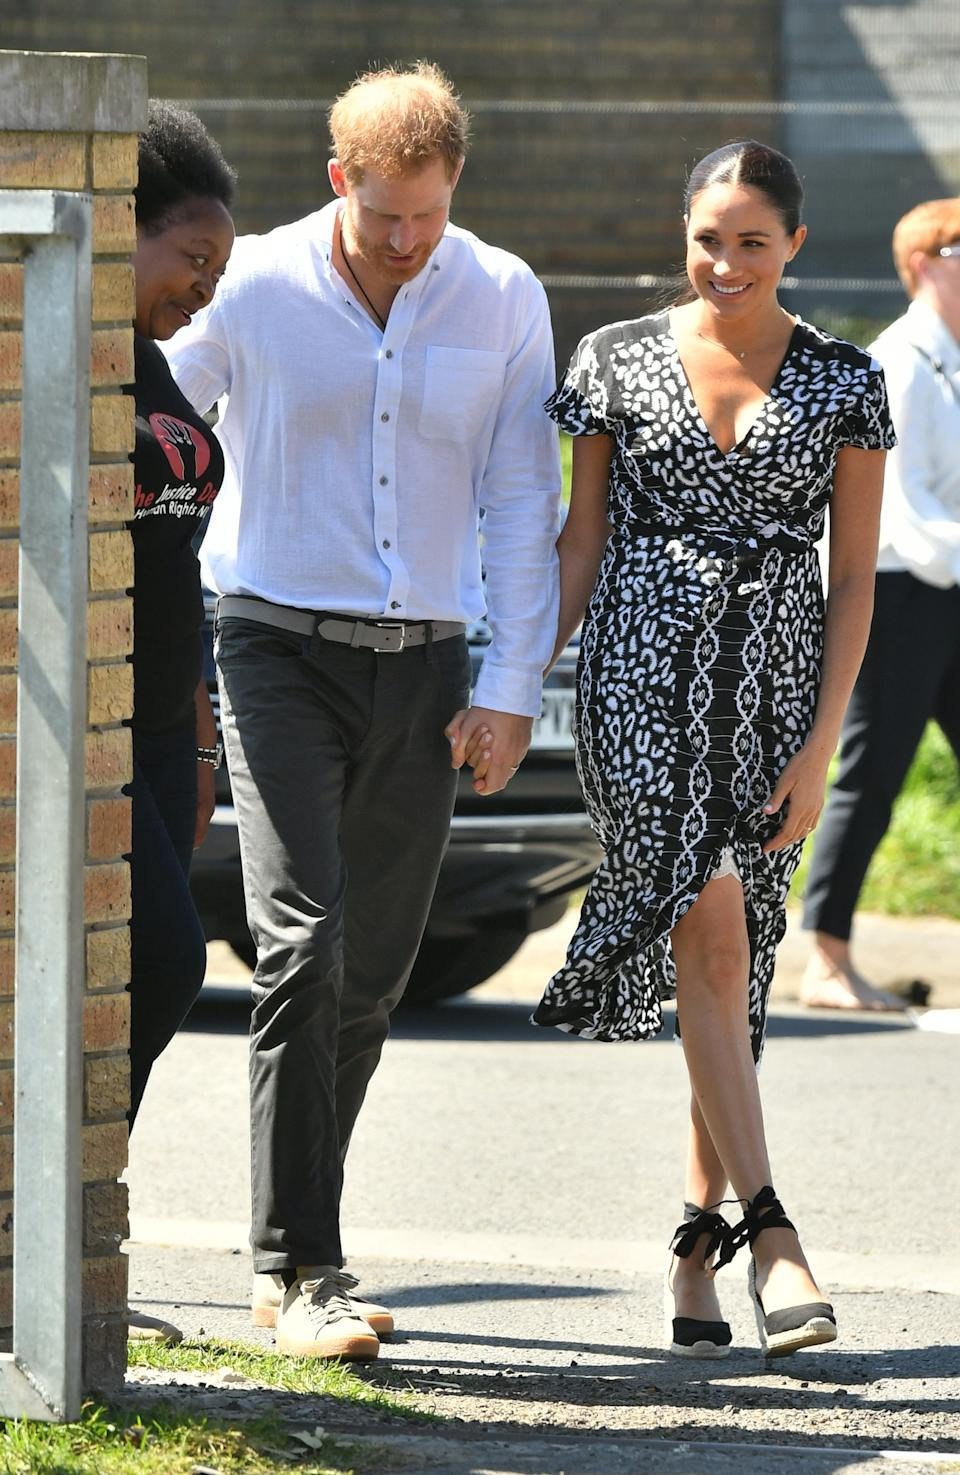 The Duke and Duchess of Sussex arrive at the Nyanga Township in Cape Town [Photo: PA]